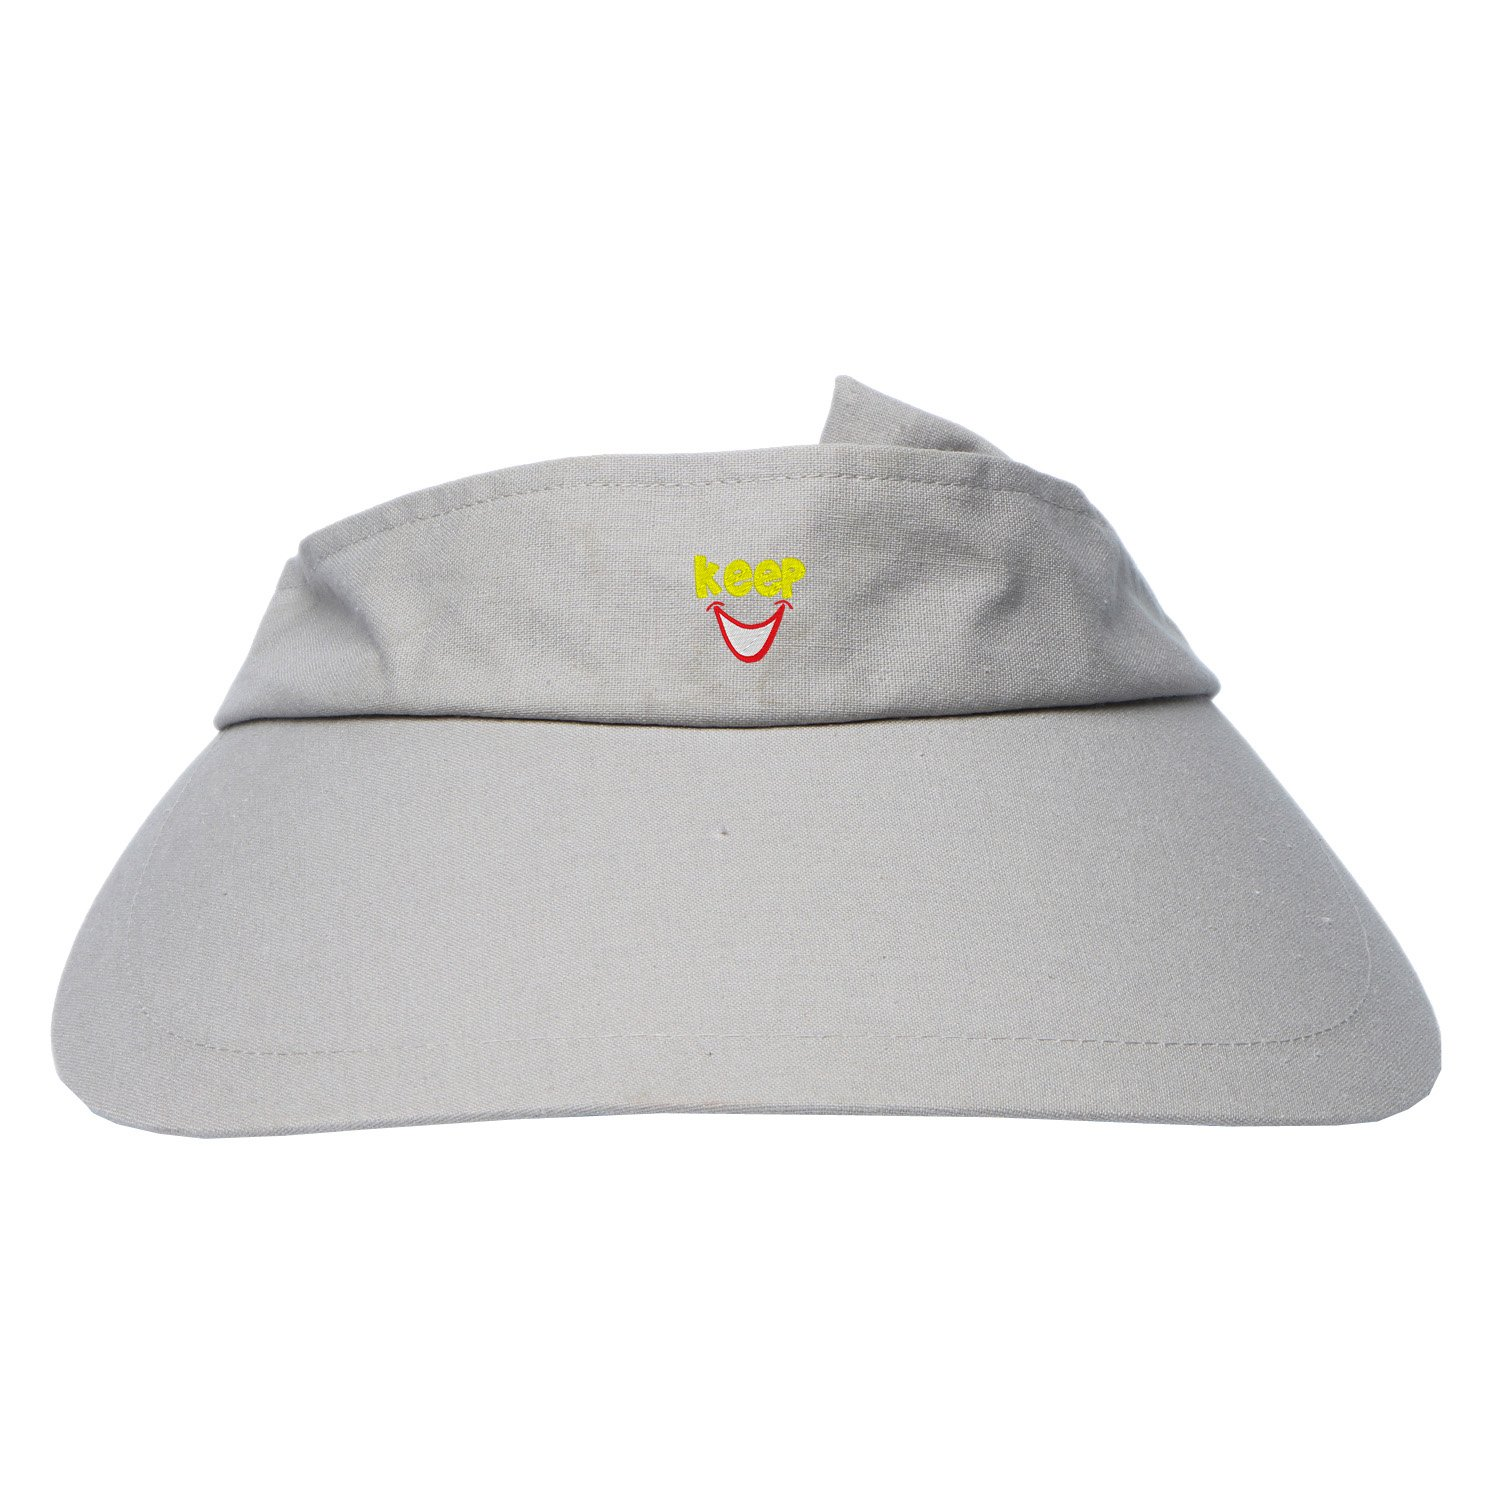 Womens Summer Embroidery blushing smiley face UV Protection Sun Visor Hat at Amazon Womens Clothing store: